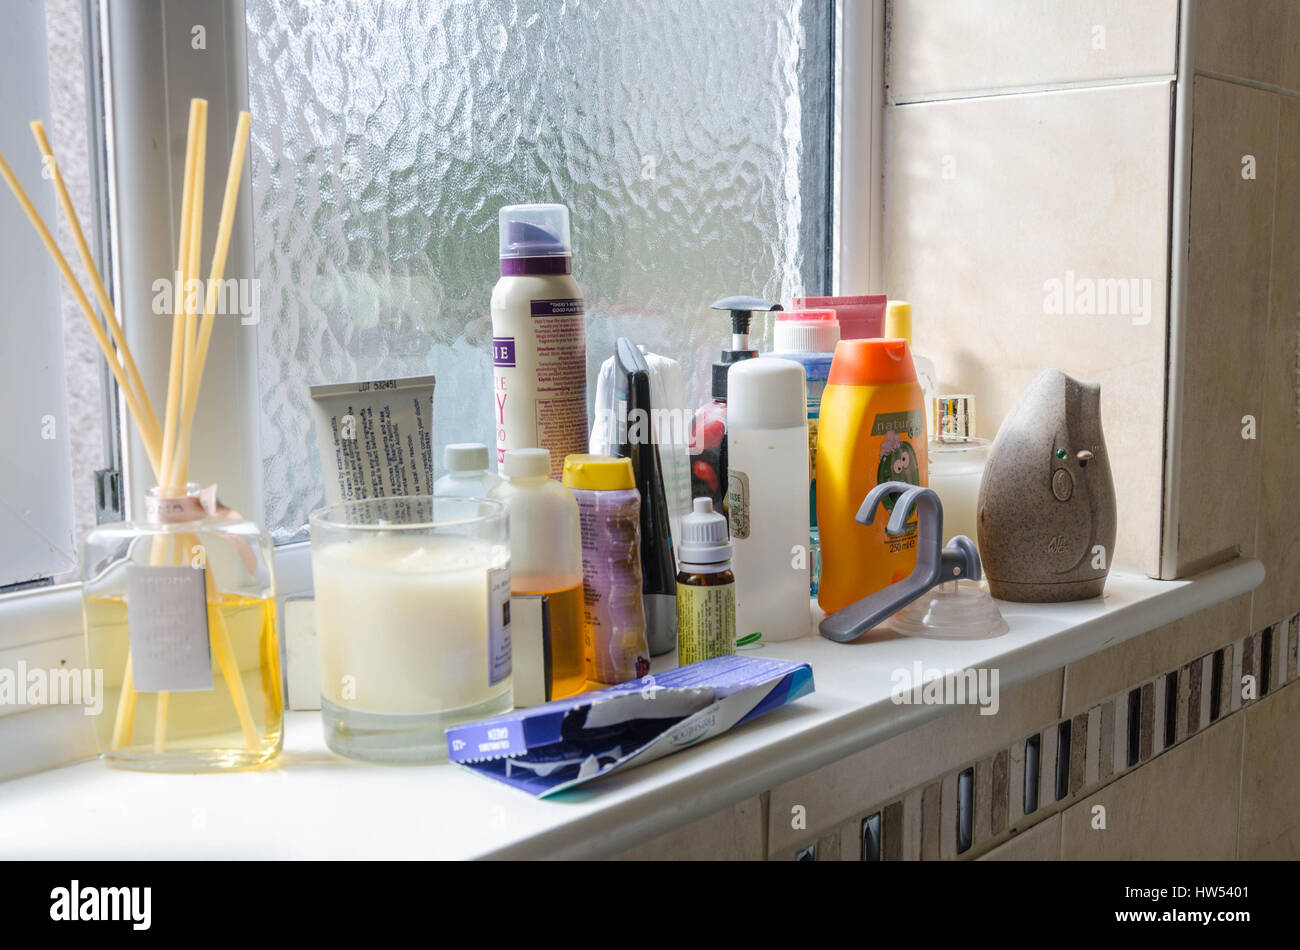 bottles-toiletries-soaps-and-lotions-on-a-bathroom-window-sill-HW5401.jpg